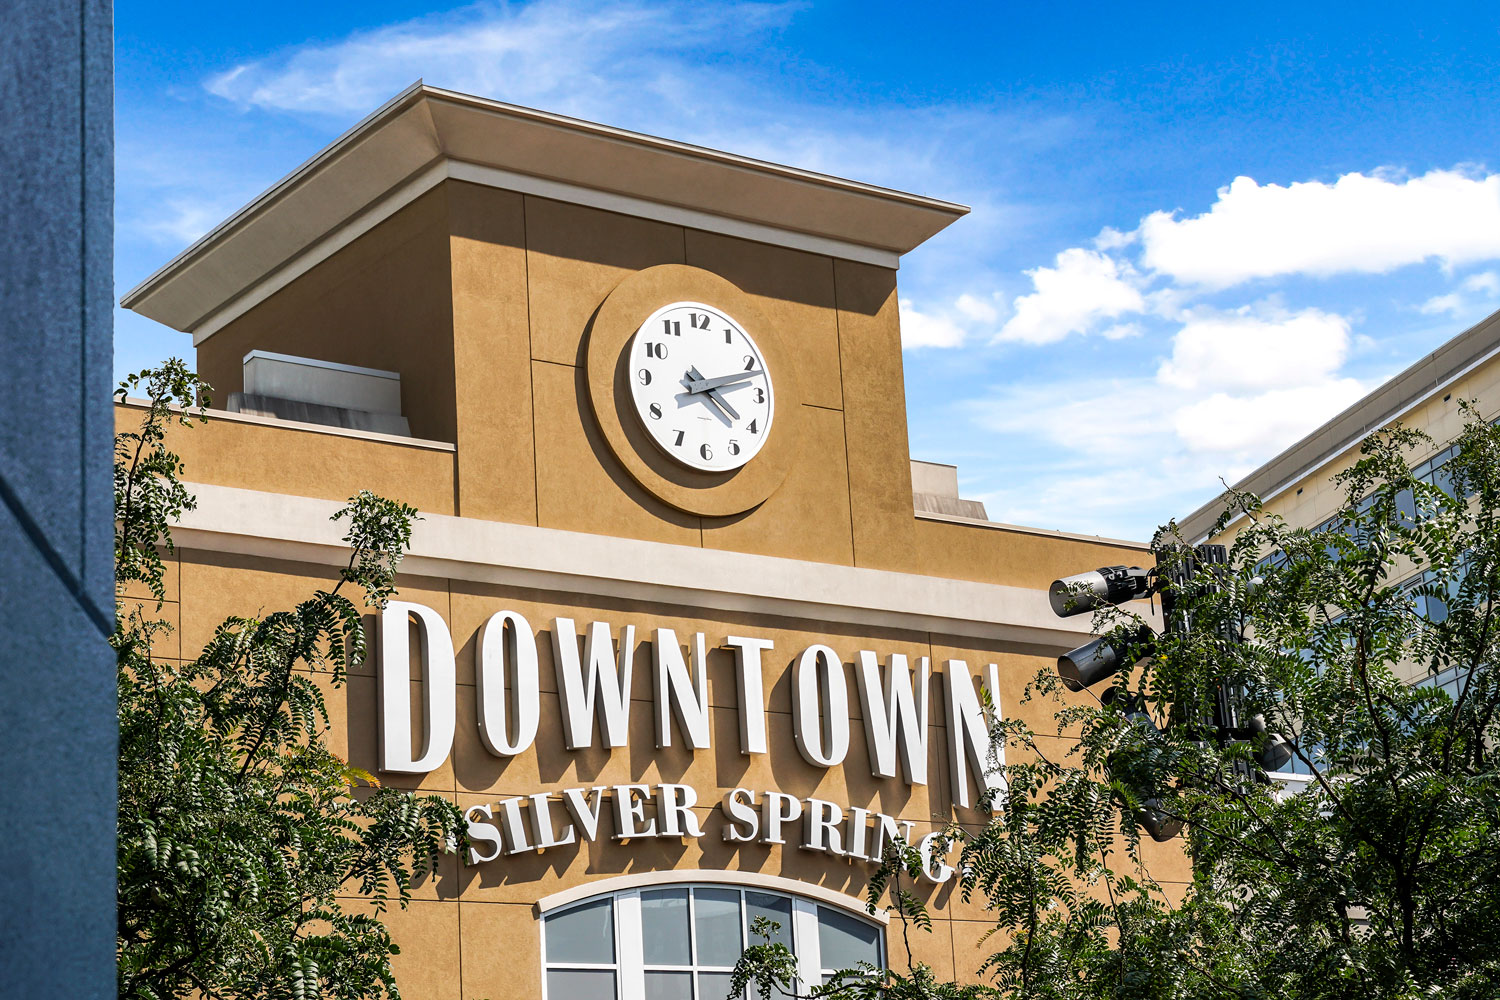 8 minutes to Downtown Silver Spring, MD